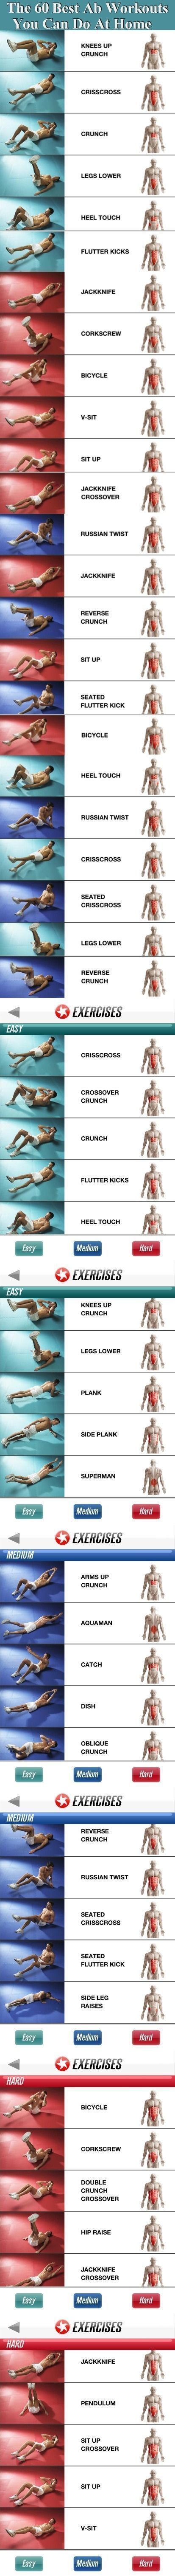 #Bar  #Brothers  #Exercises  #fatdiminisherreal  #Fitness  #loss  #weight #Best #Exercises #with  Be...